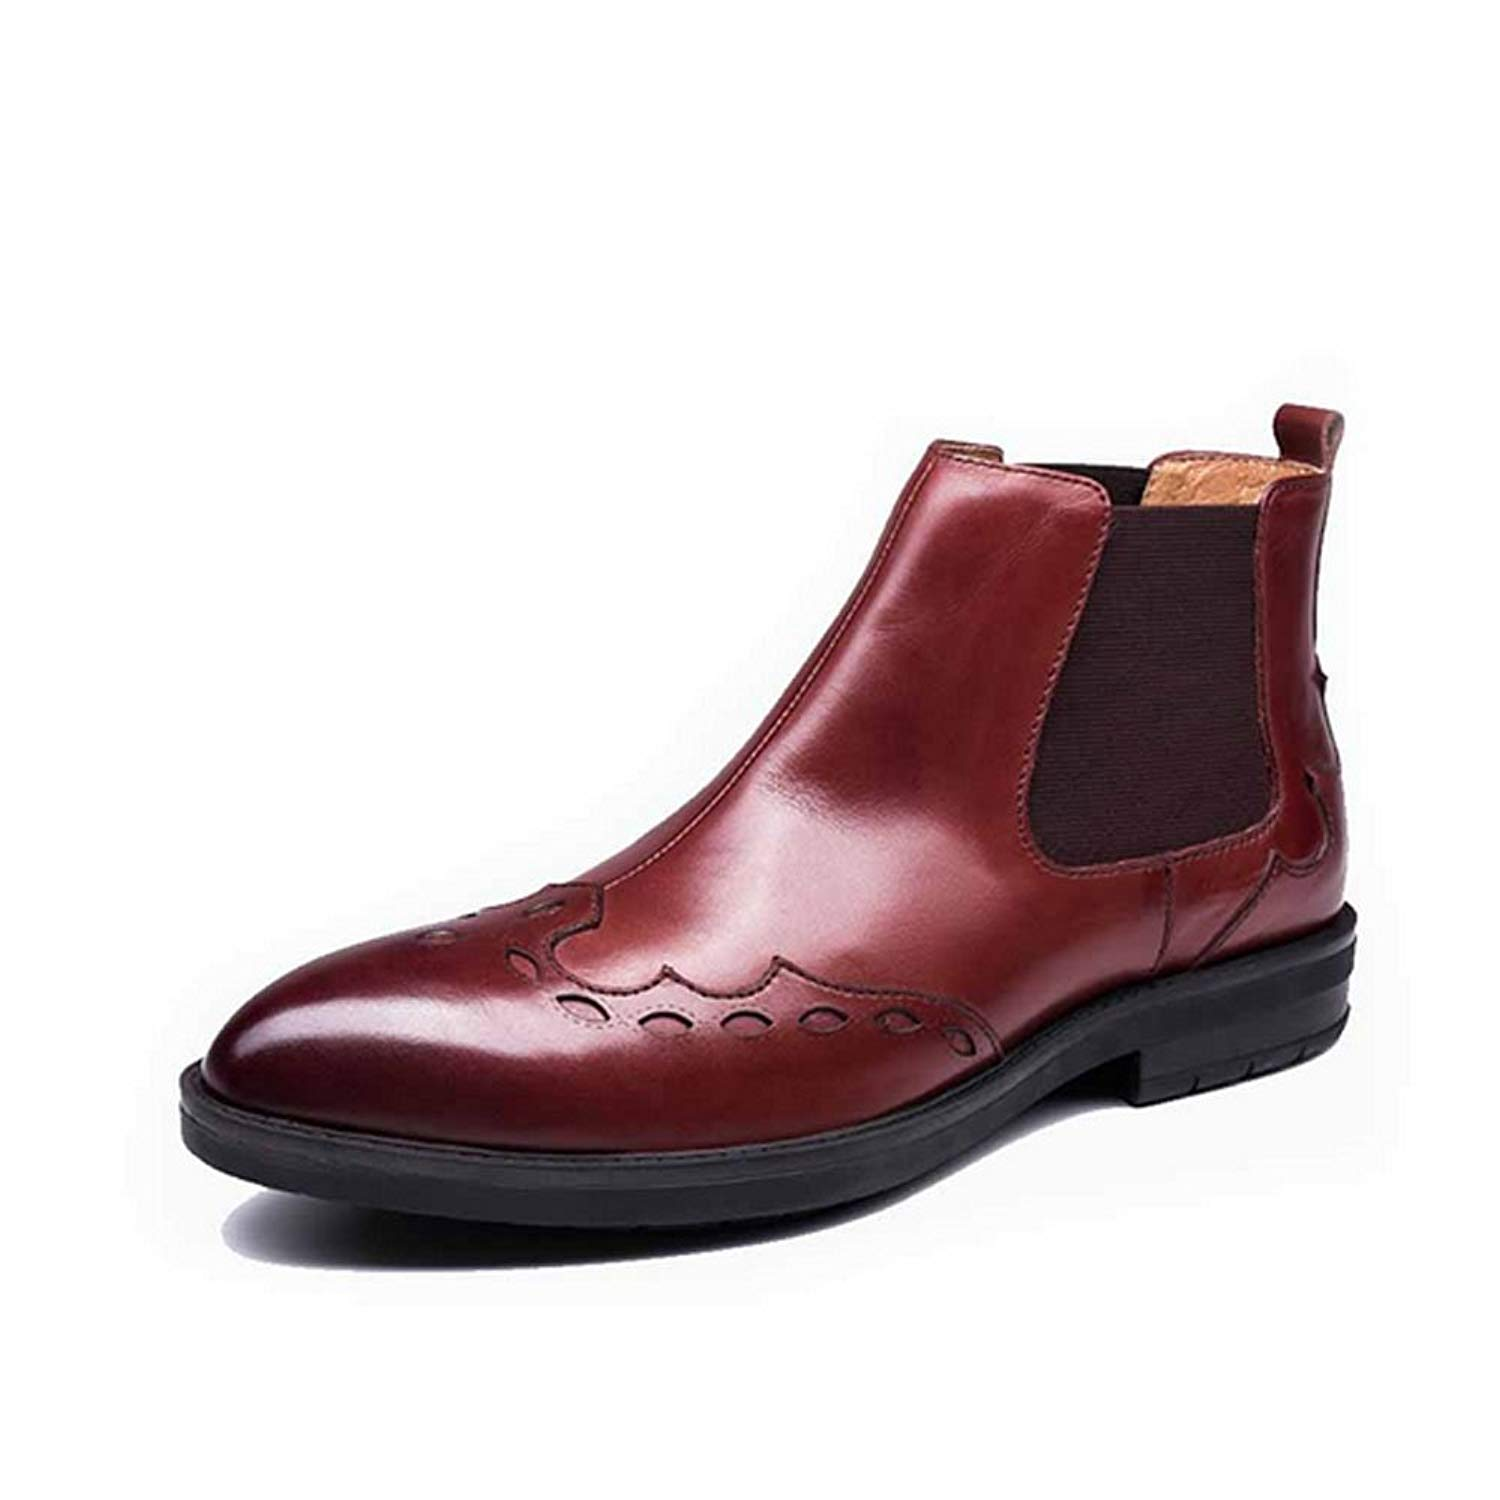 a5a58e781706 Cheap Shoes Chelsea Boots, find Shoes Chelsea Boots deals on line at ...